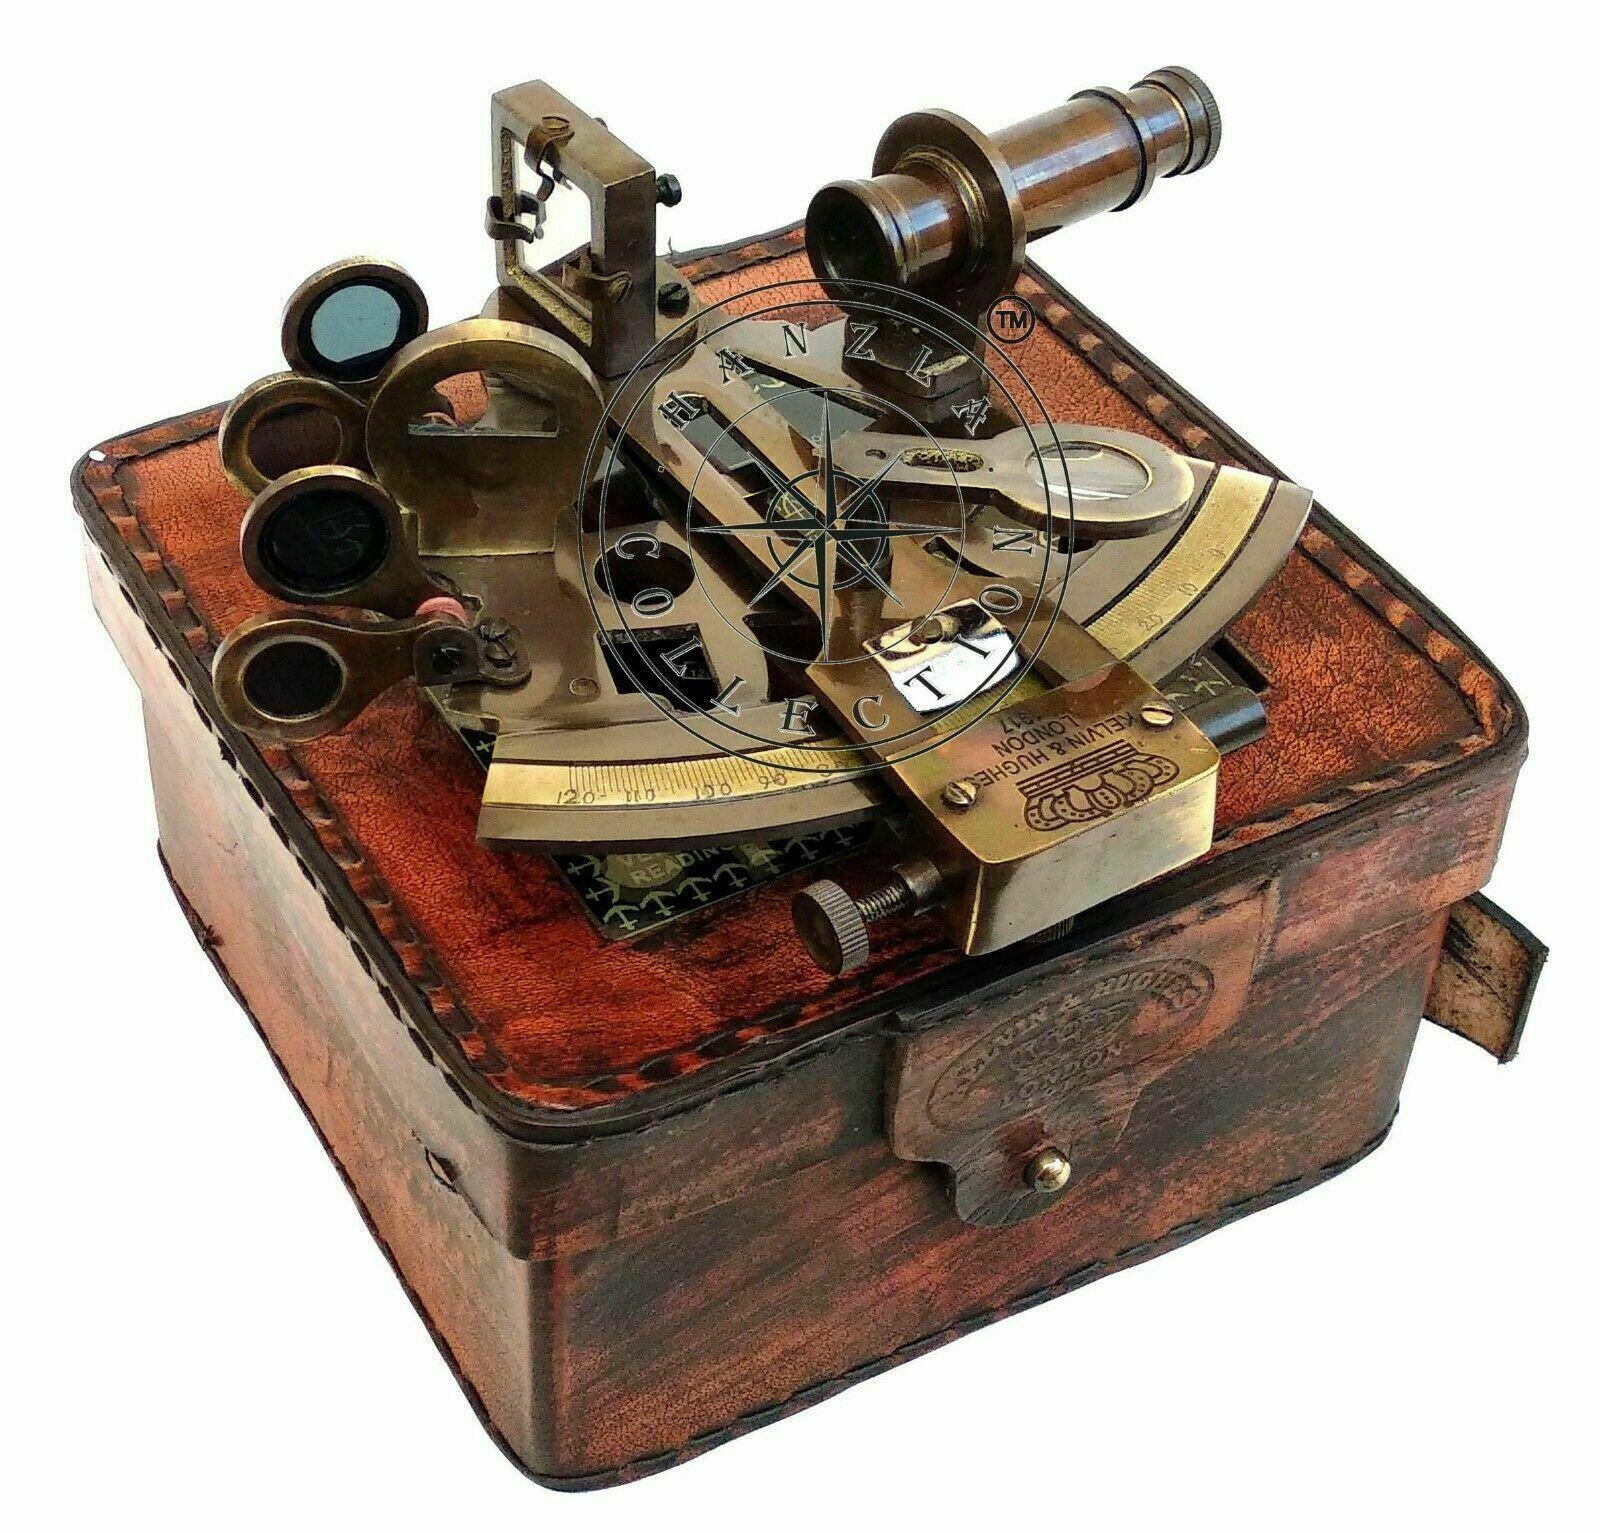 RARE NEW Brass Sextant Nautical Brass Sextant Working Marine Vintage/Leather Box - $29.00